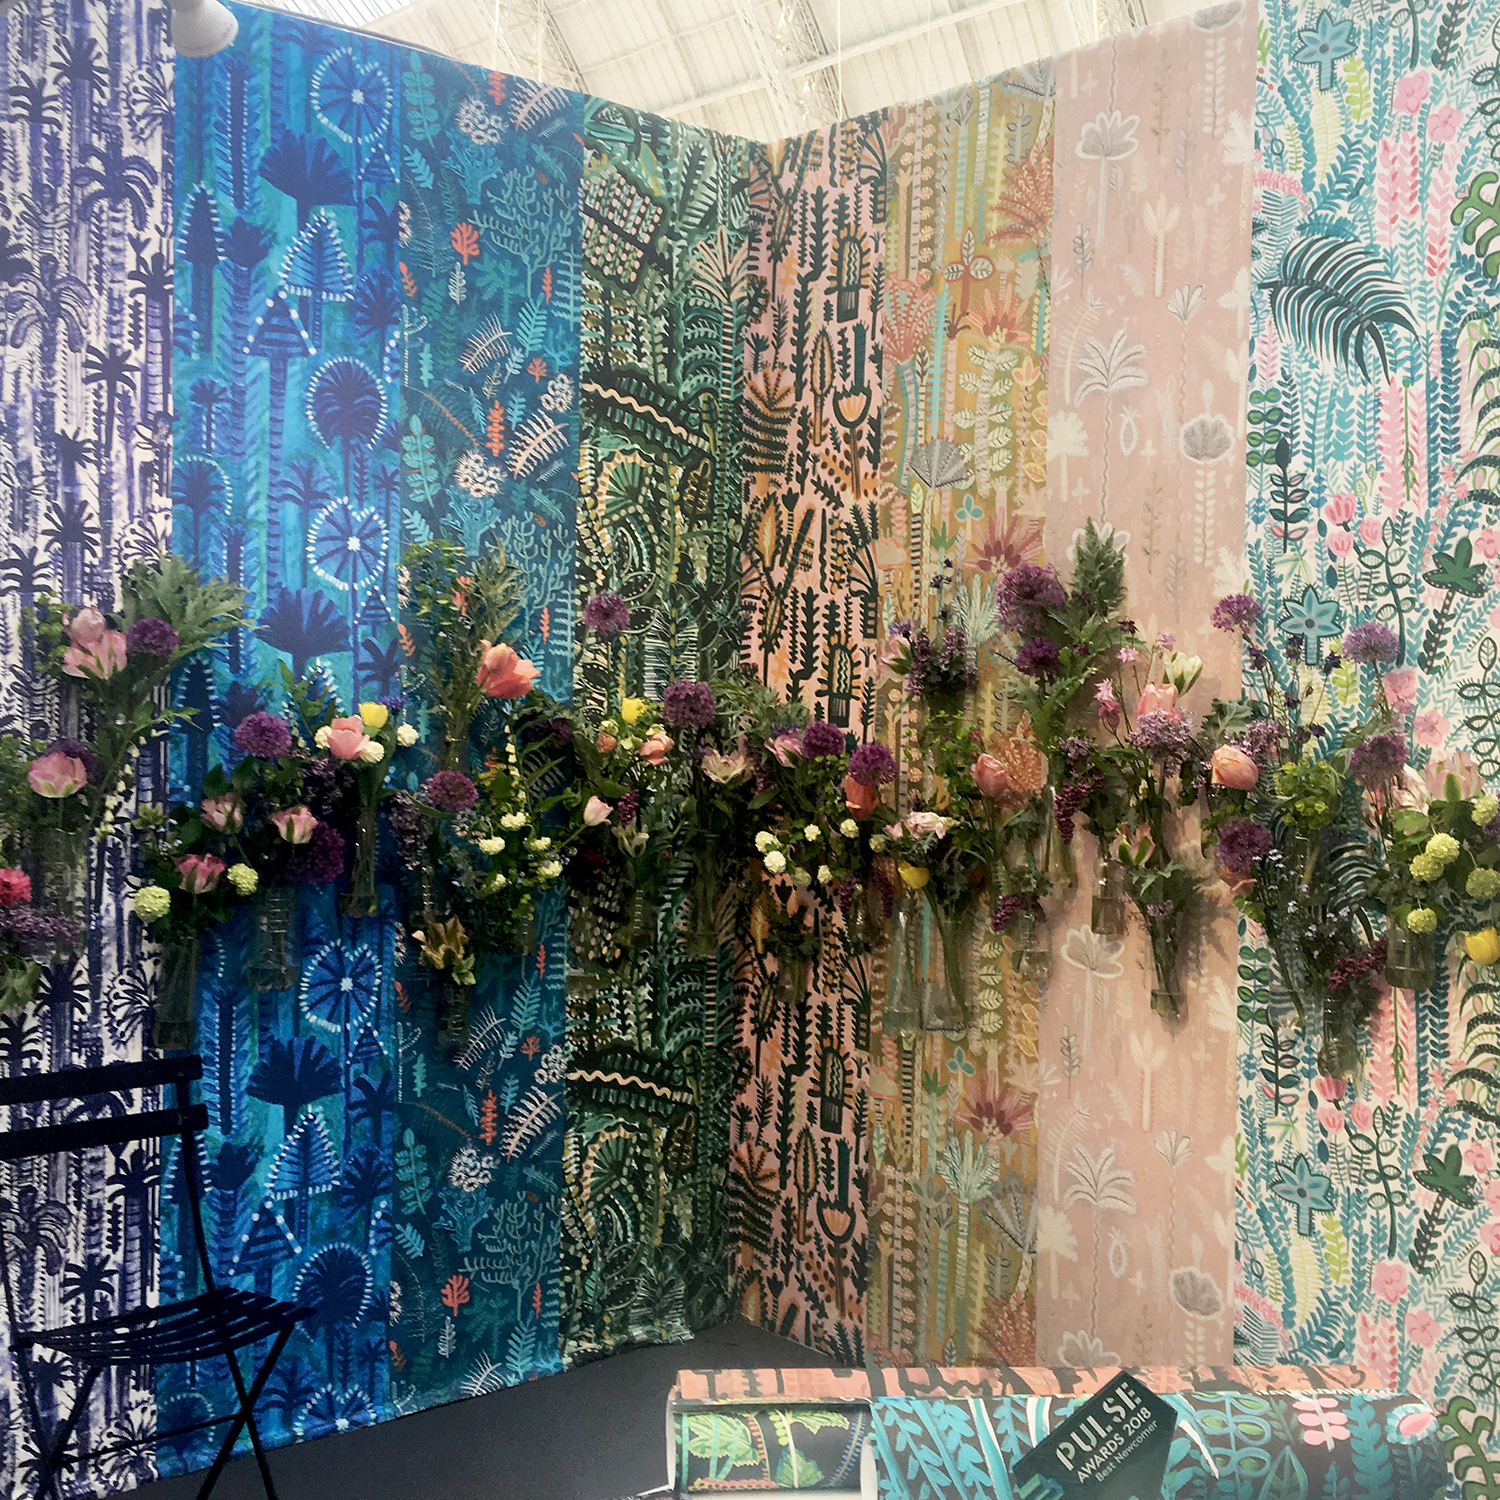 PULSE LONDON SS18